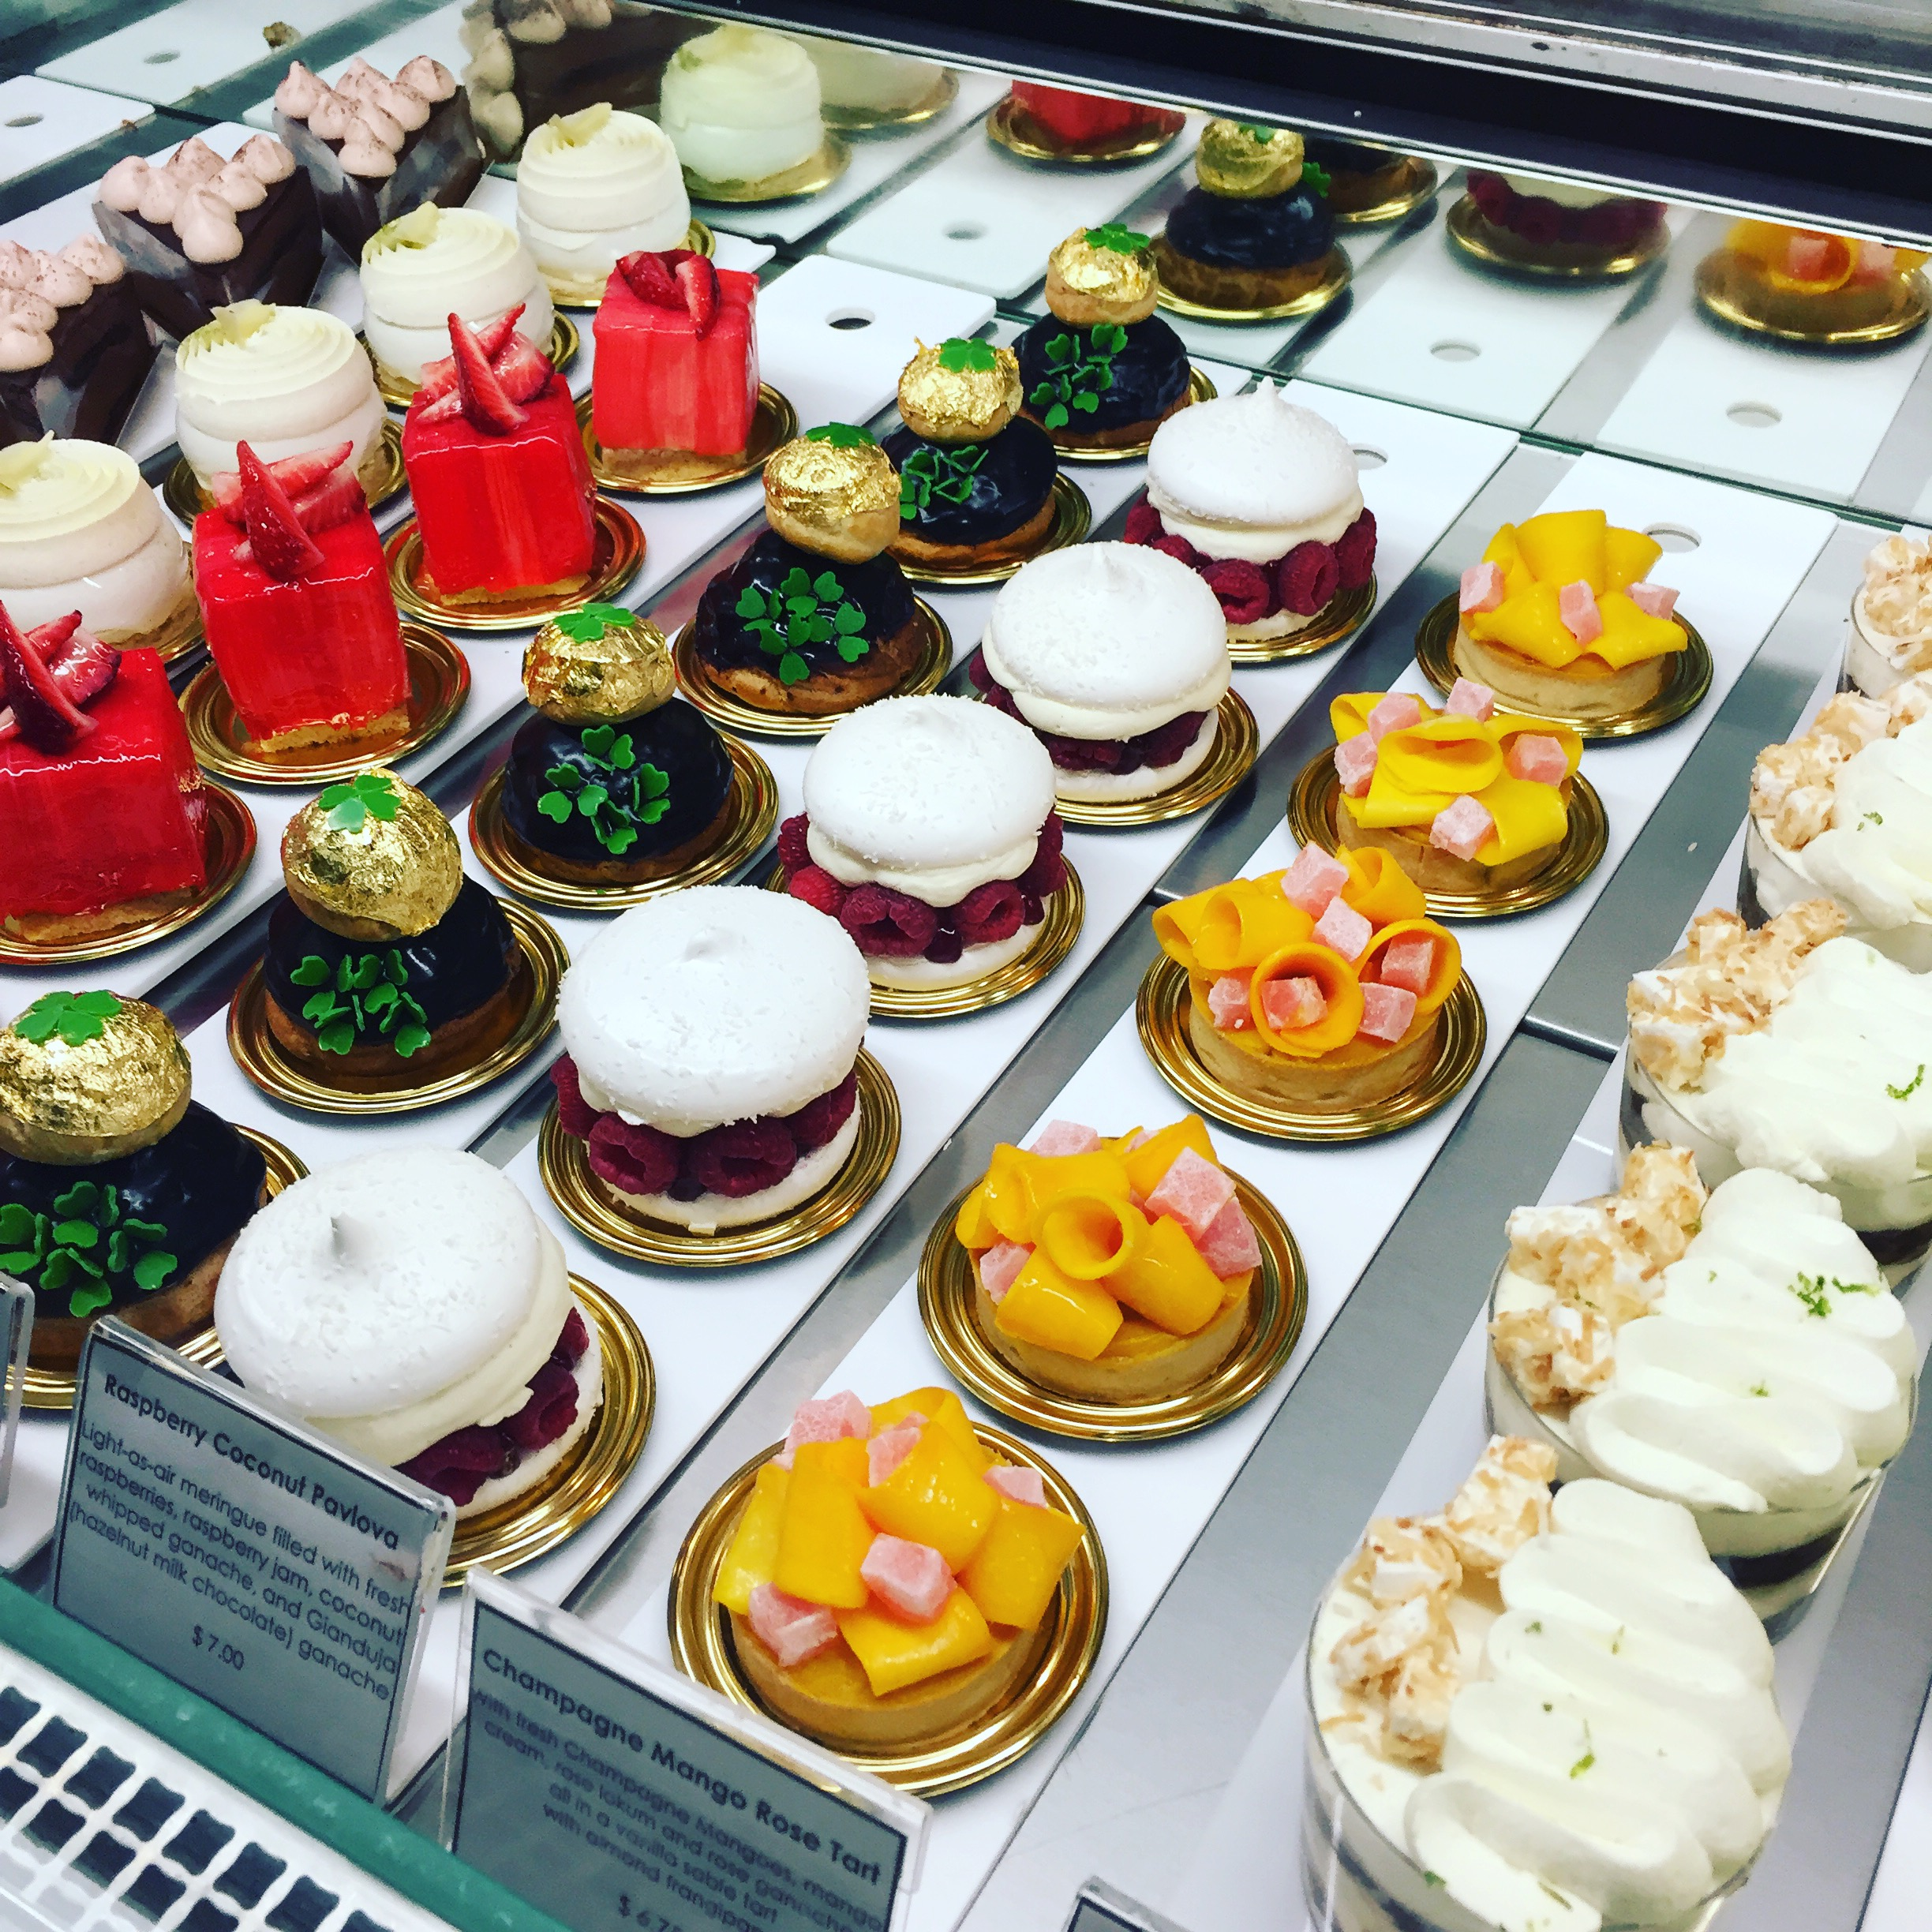 St. Patrick's Day Treats at Dominique Ansel Bakery